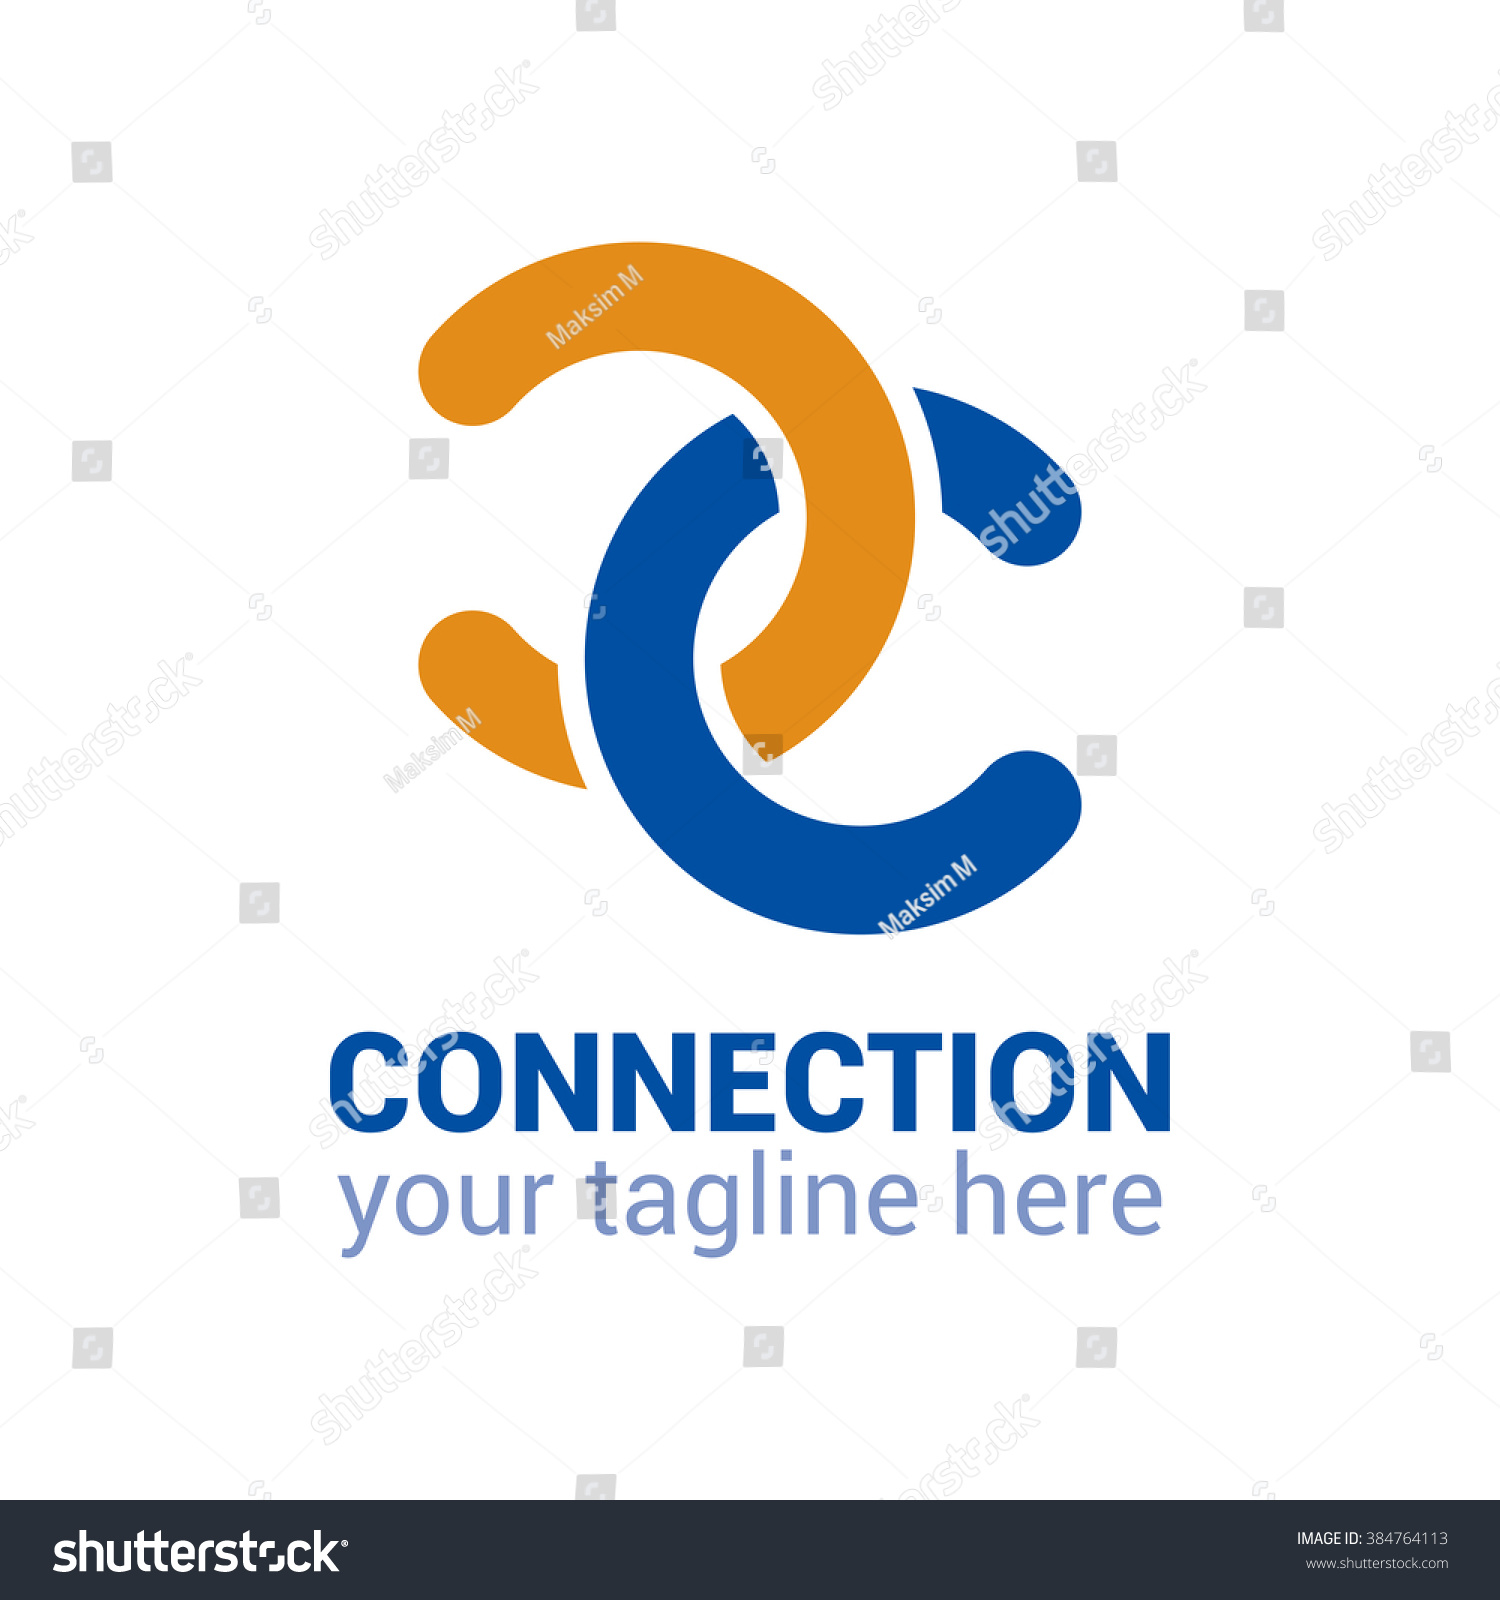 Connection logo template connection icon abstract stock vector connection logo template connection icon abstract double c logo double c icon biocorpaavc